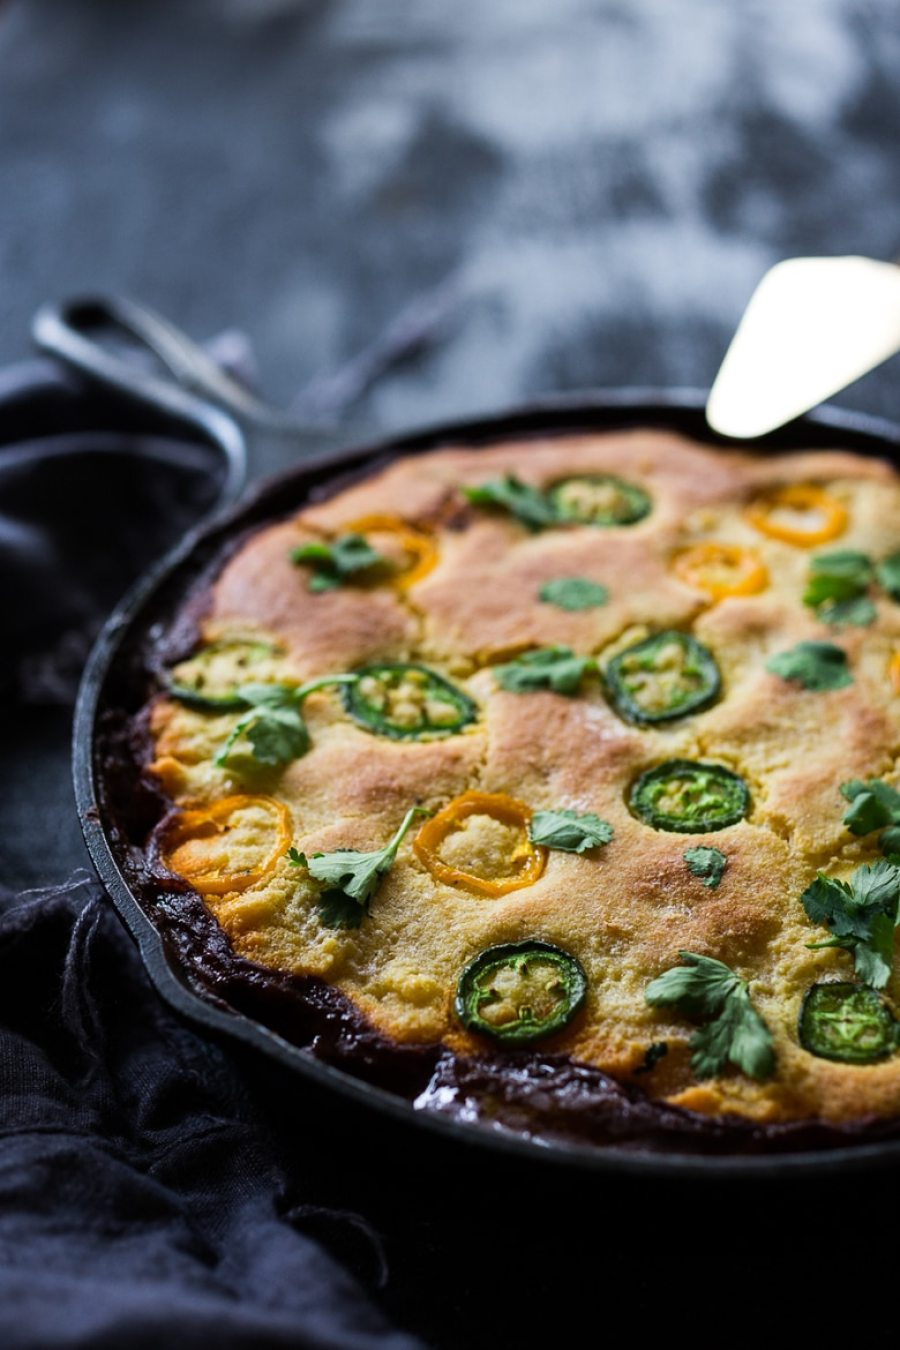 Simple Delicious Tamale Pie with your choice of ground turkey, beef or veggie meat with seasonal veggies, topped with a delicious cornbread crust. | www.feastingathome.com